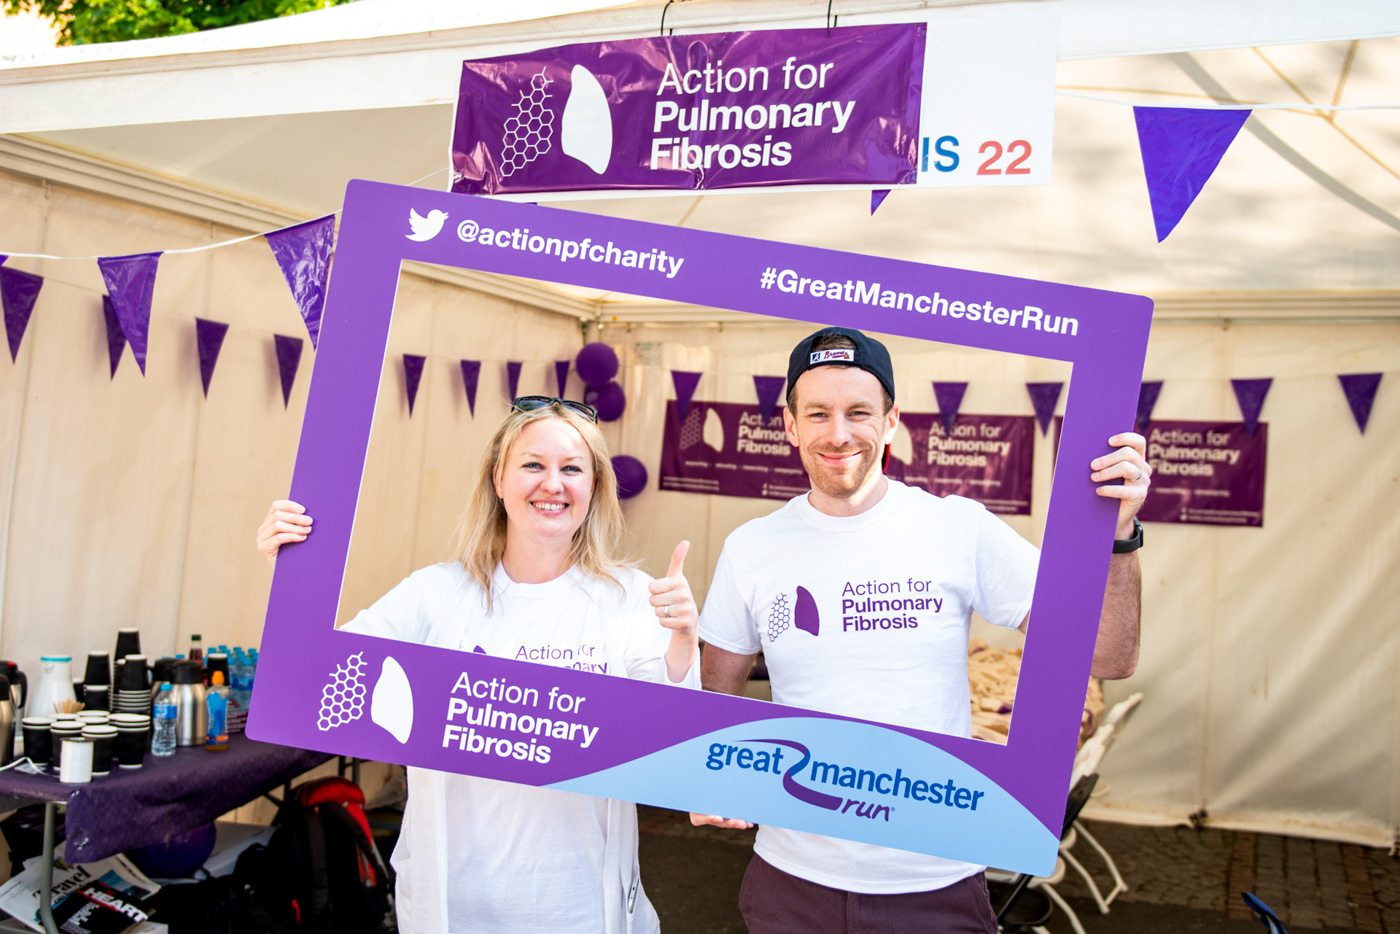 Selfie Frame Printing for Action for Pulmonary Fibrosis Charity